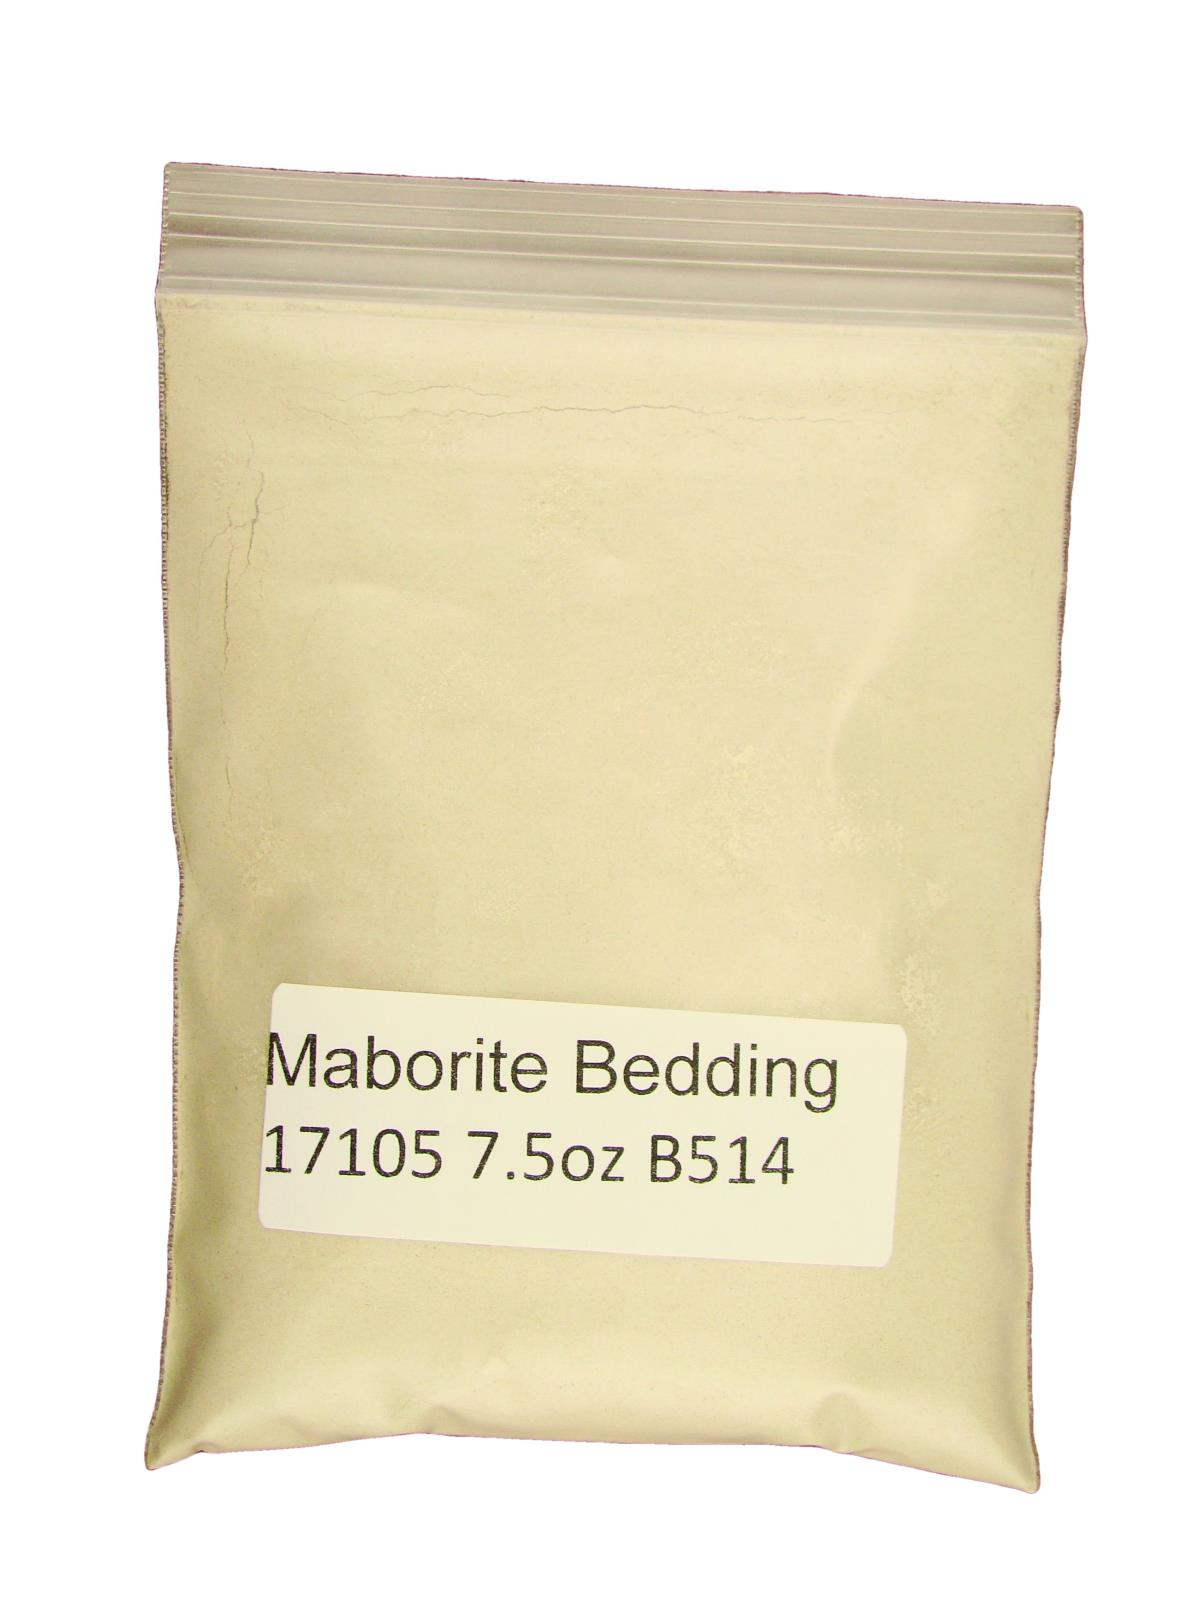 Marborite Furnace Bedding 7.5oz - Gold Recovery-Flux Smelting-Refining-Assay